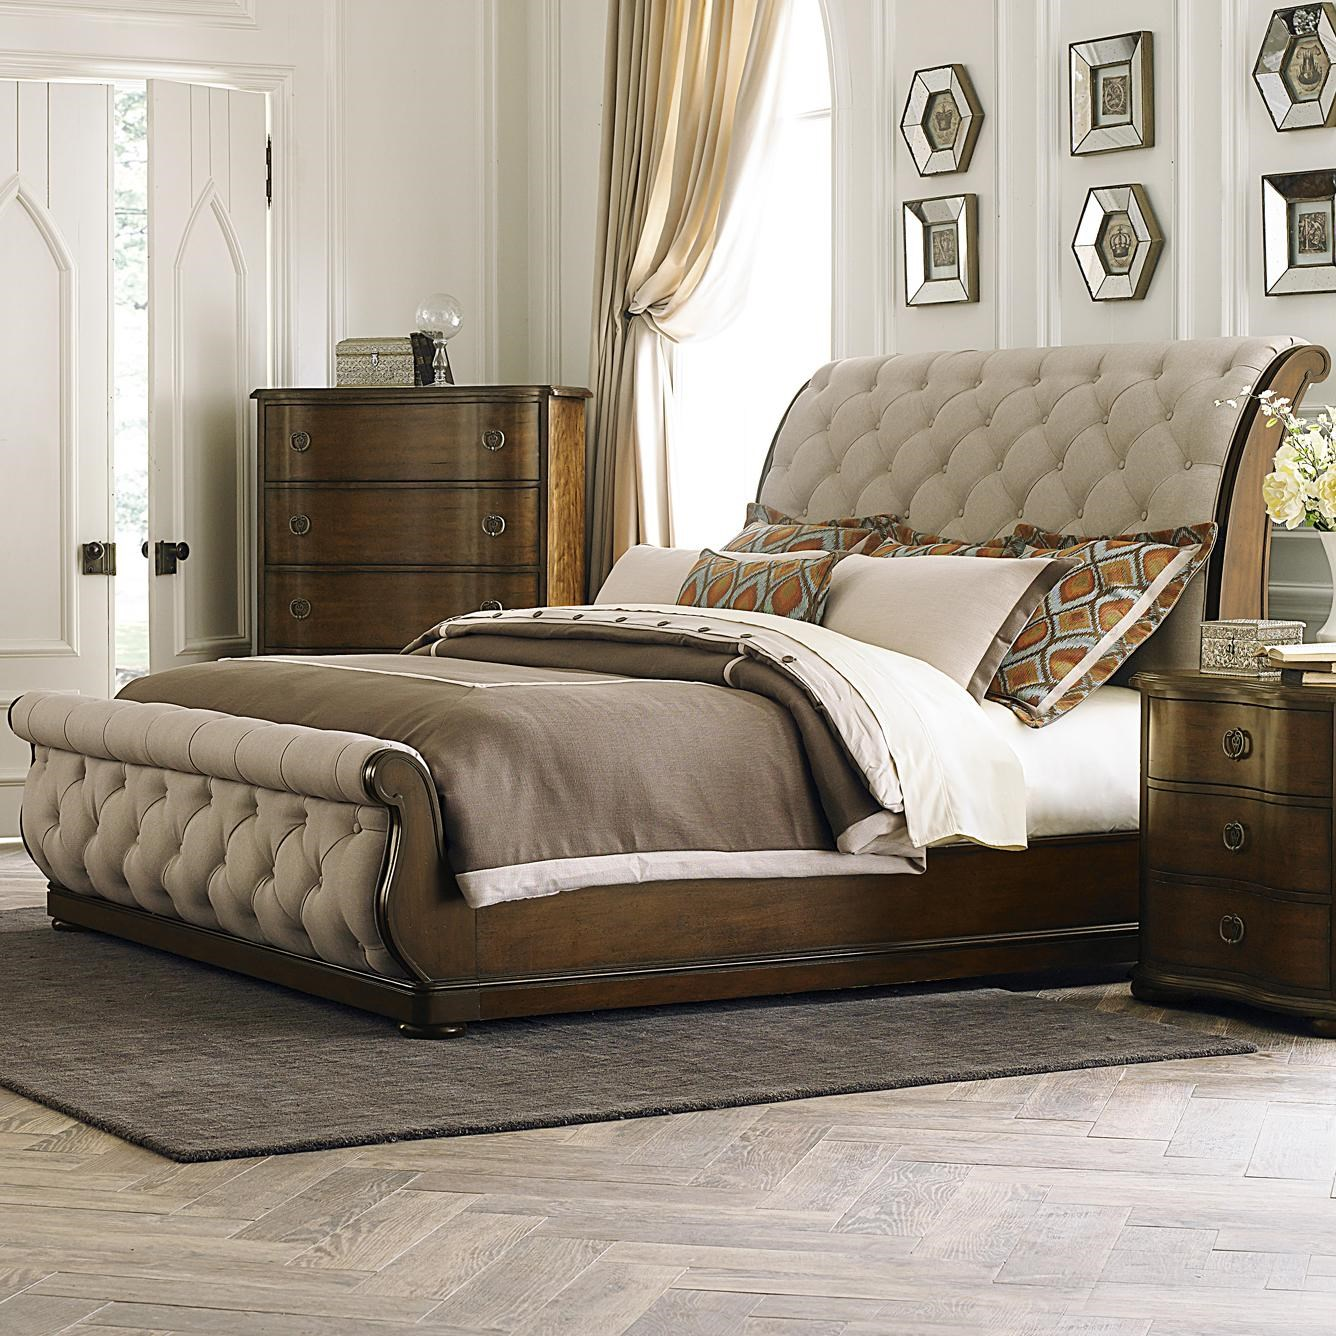 Picture of: Liberty Furniture Cotswold Transitional Upholstered Queen Sleigh Bed Royal Furniture Sleigh Beds